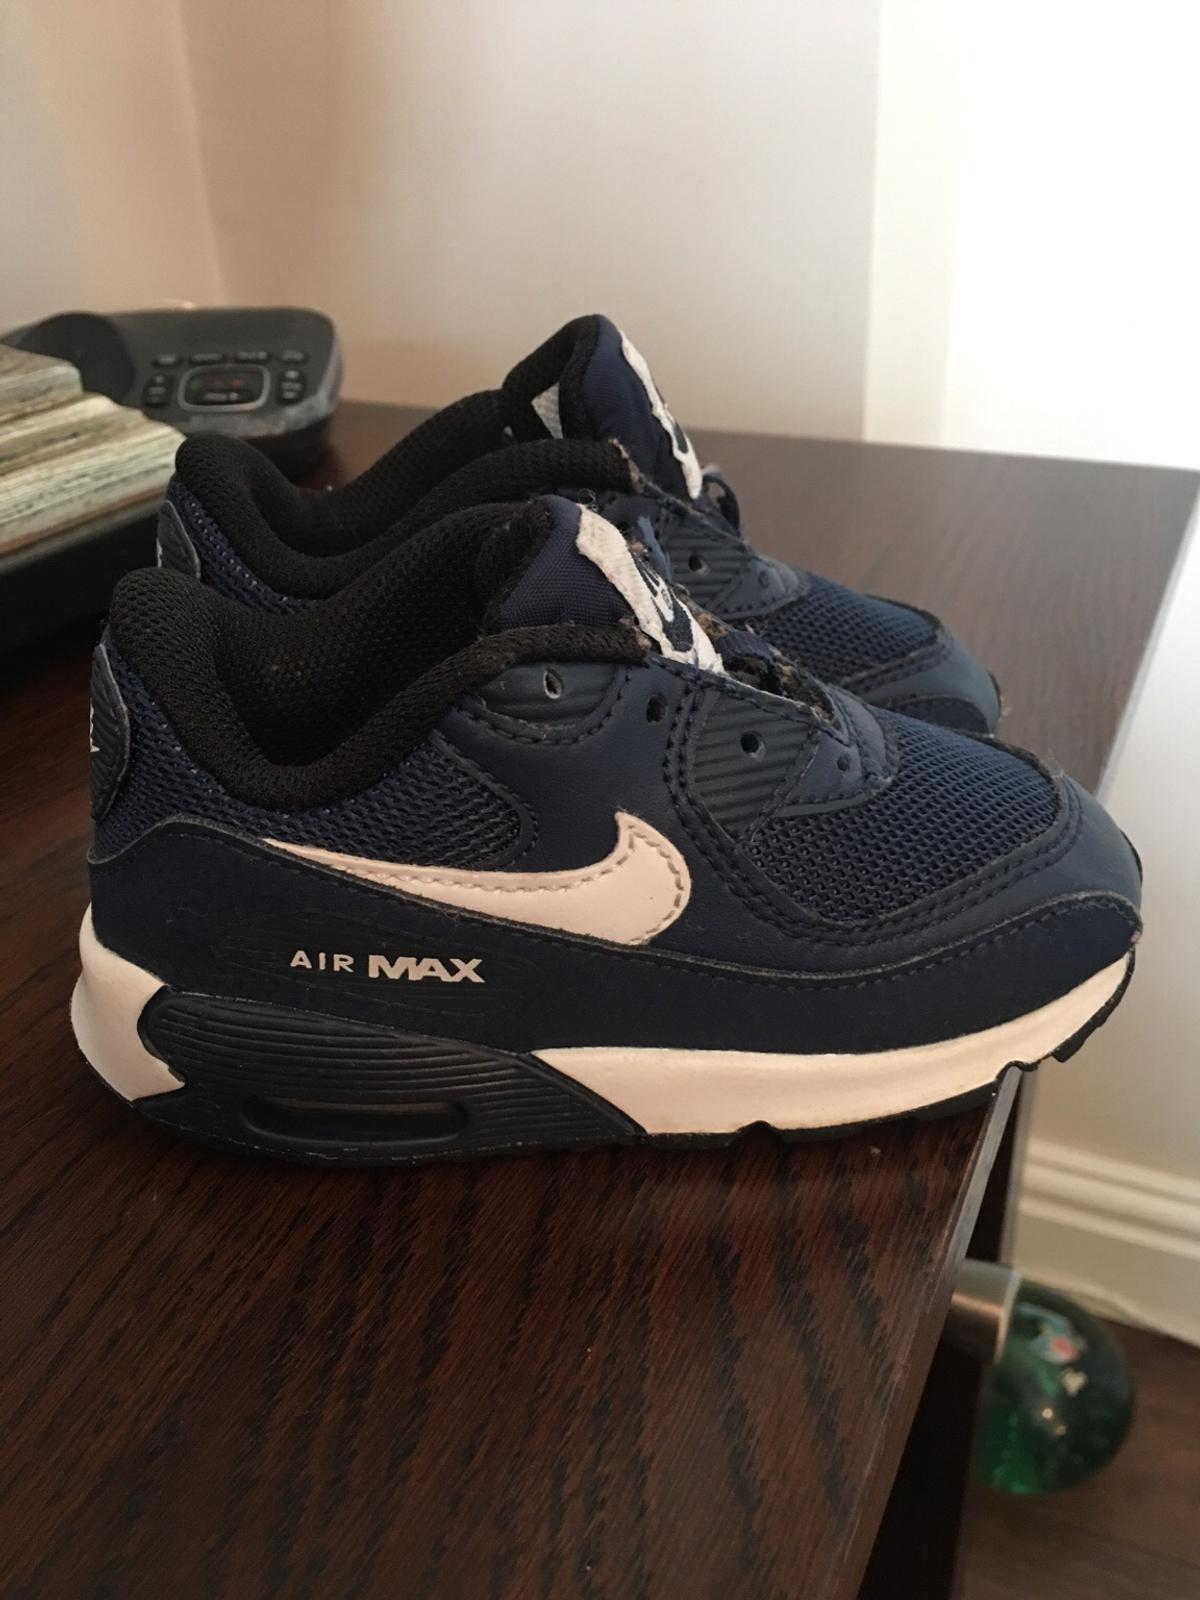 34d8accb140de Kids 6.5 Nike air max trainers (no laces) £2 in St Helens for £2.00 ...